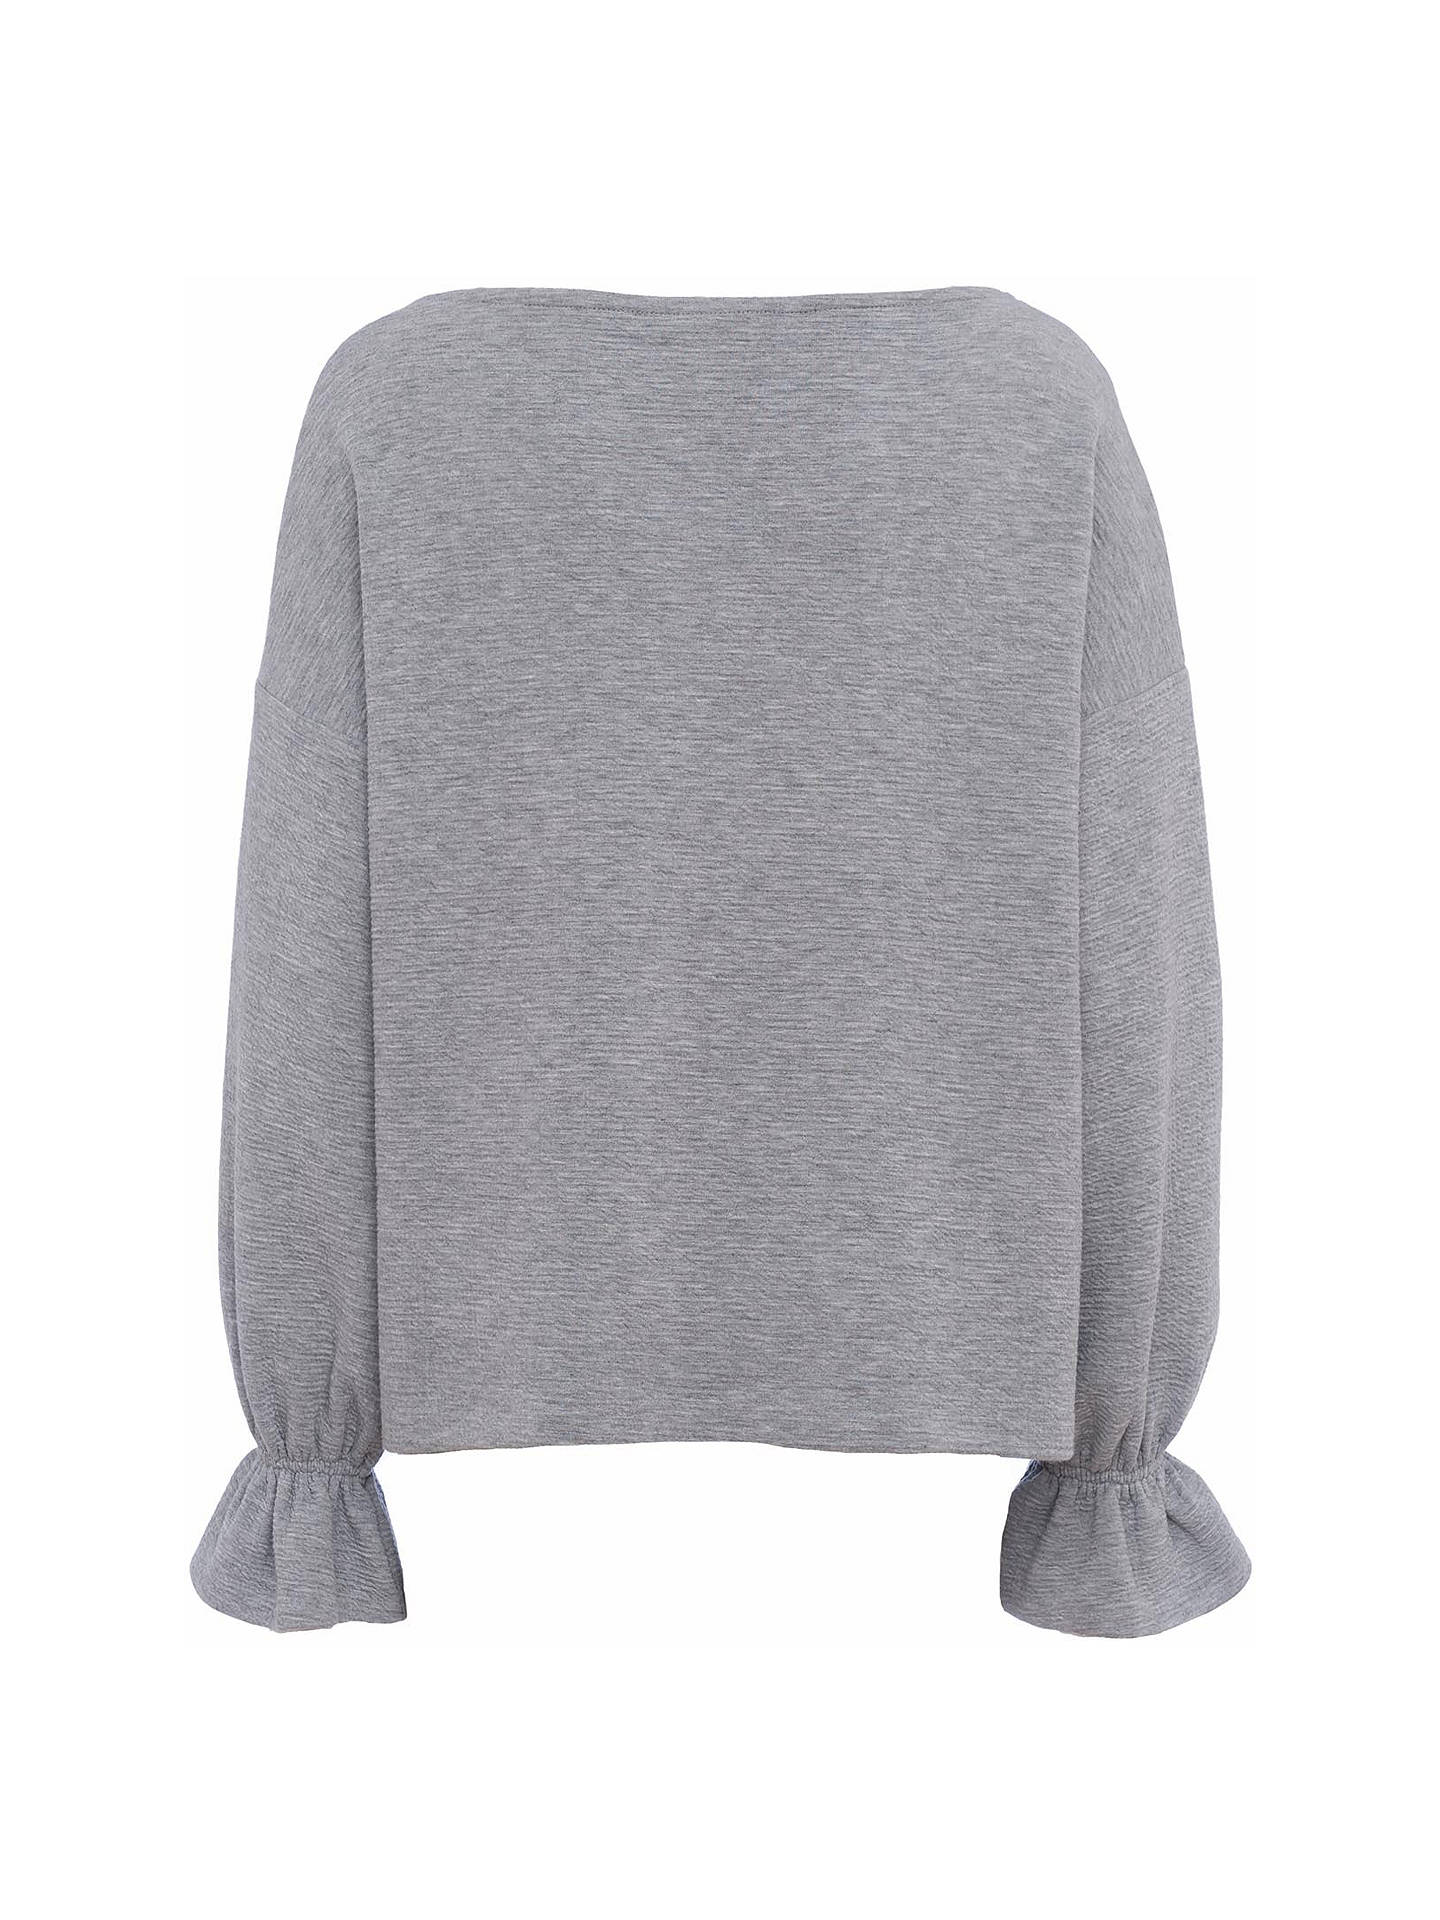 8c03a8eb802 ... Buy French Connection Ellen Textured Jumper, Grey, XS Online at  johnlewis.com